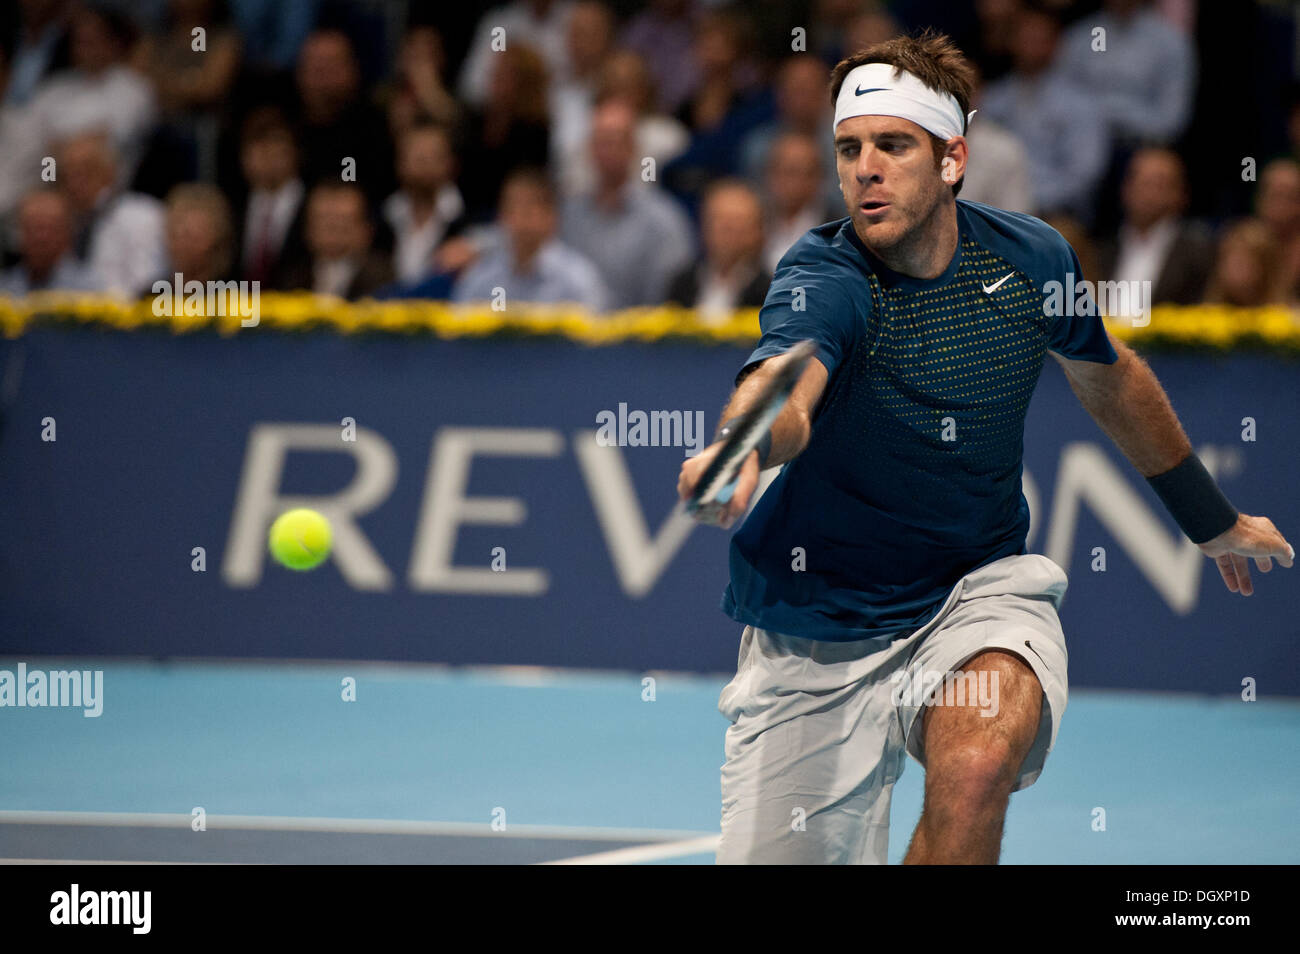 Basel, Switzerland. 27th Oct, 2013. J.M. Del Potro (ARG) reaches for the ball during the final of the Swiss Indoors at St. Jakobshalle on Sunday. Photo: Miroslav Dakov/ Alamy Live News - Stock Image